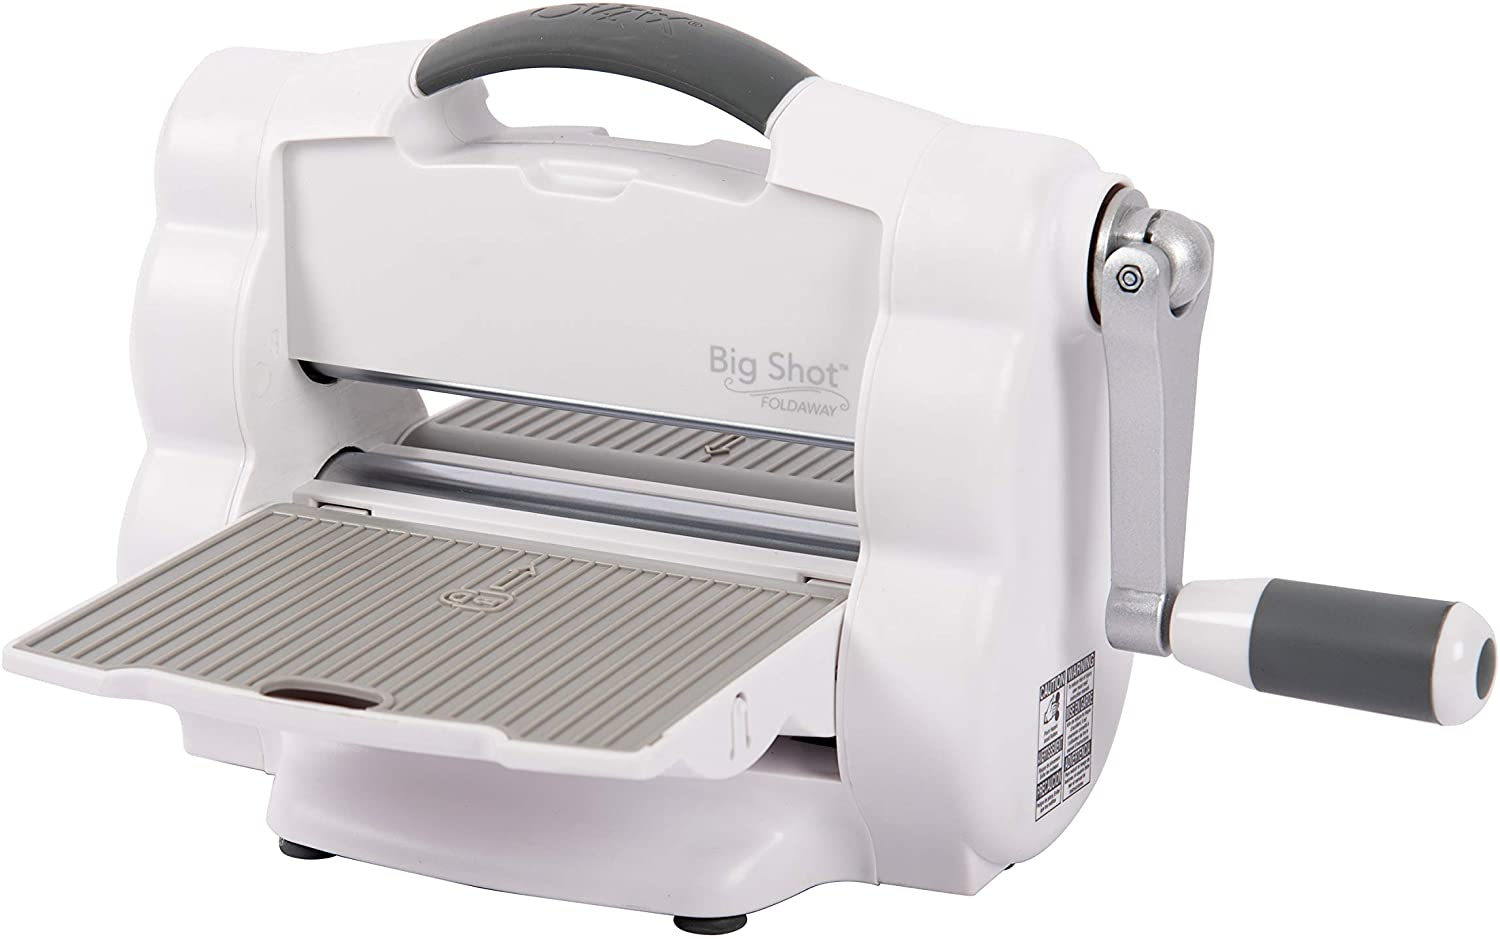 Sizzix 662500 Big Shot Foldaway, A5 Manual Die Cutting and Embossing Machine, 6inch (15.24cm) Opening, Multicolor